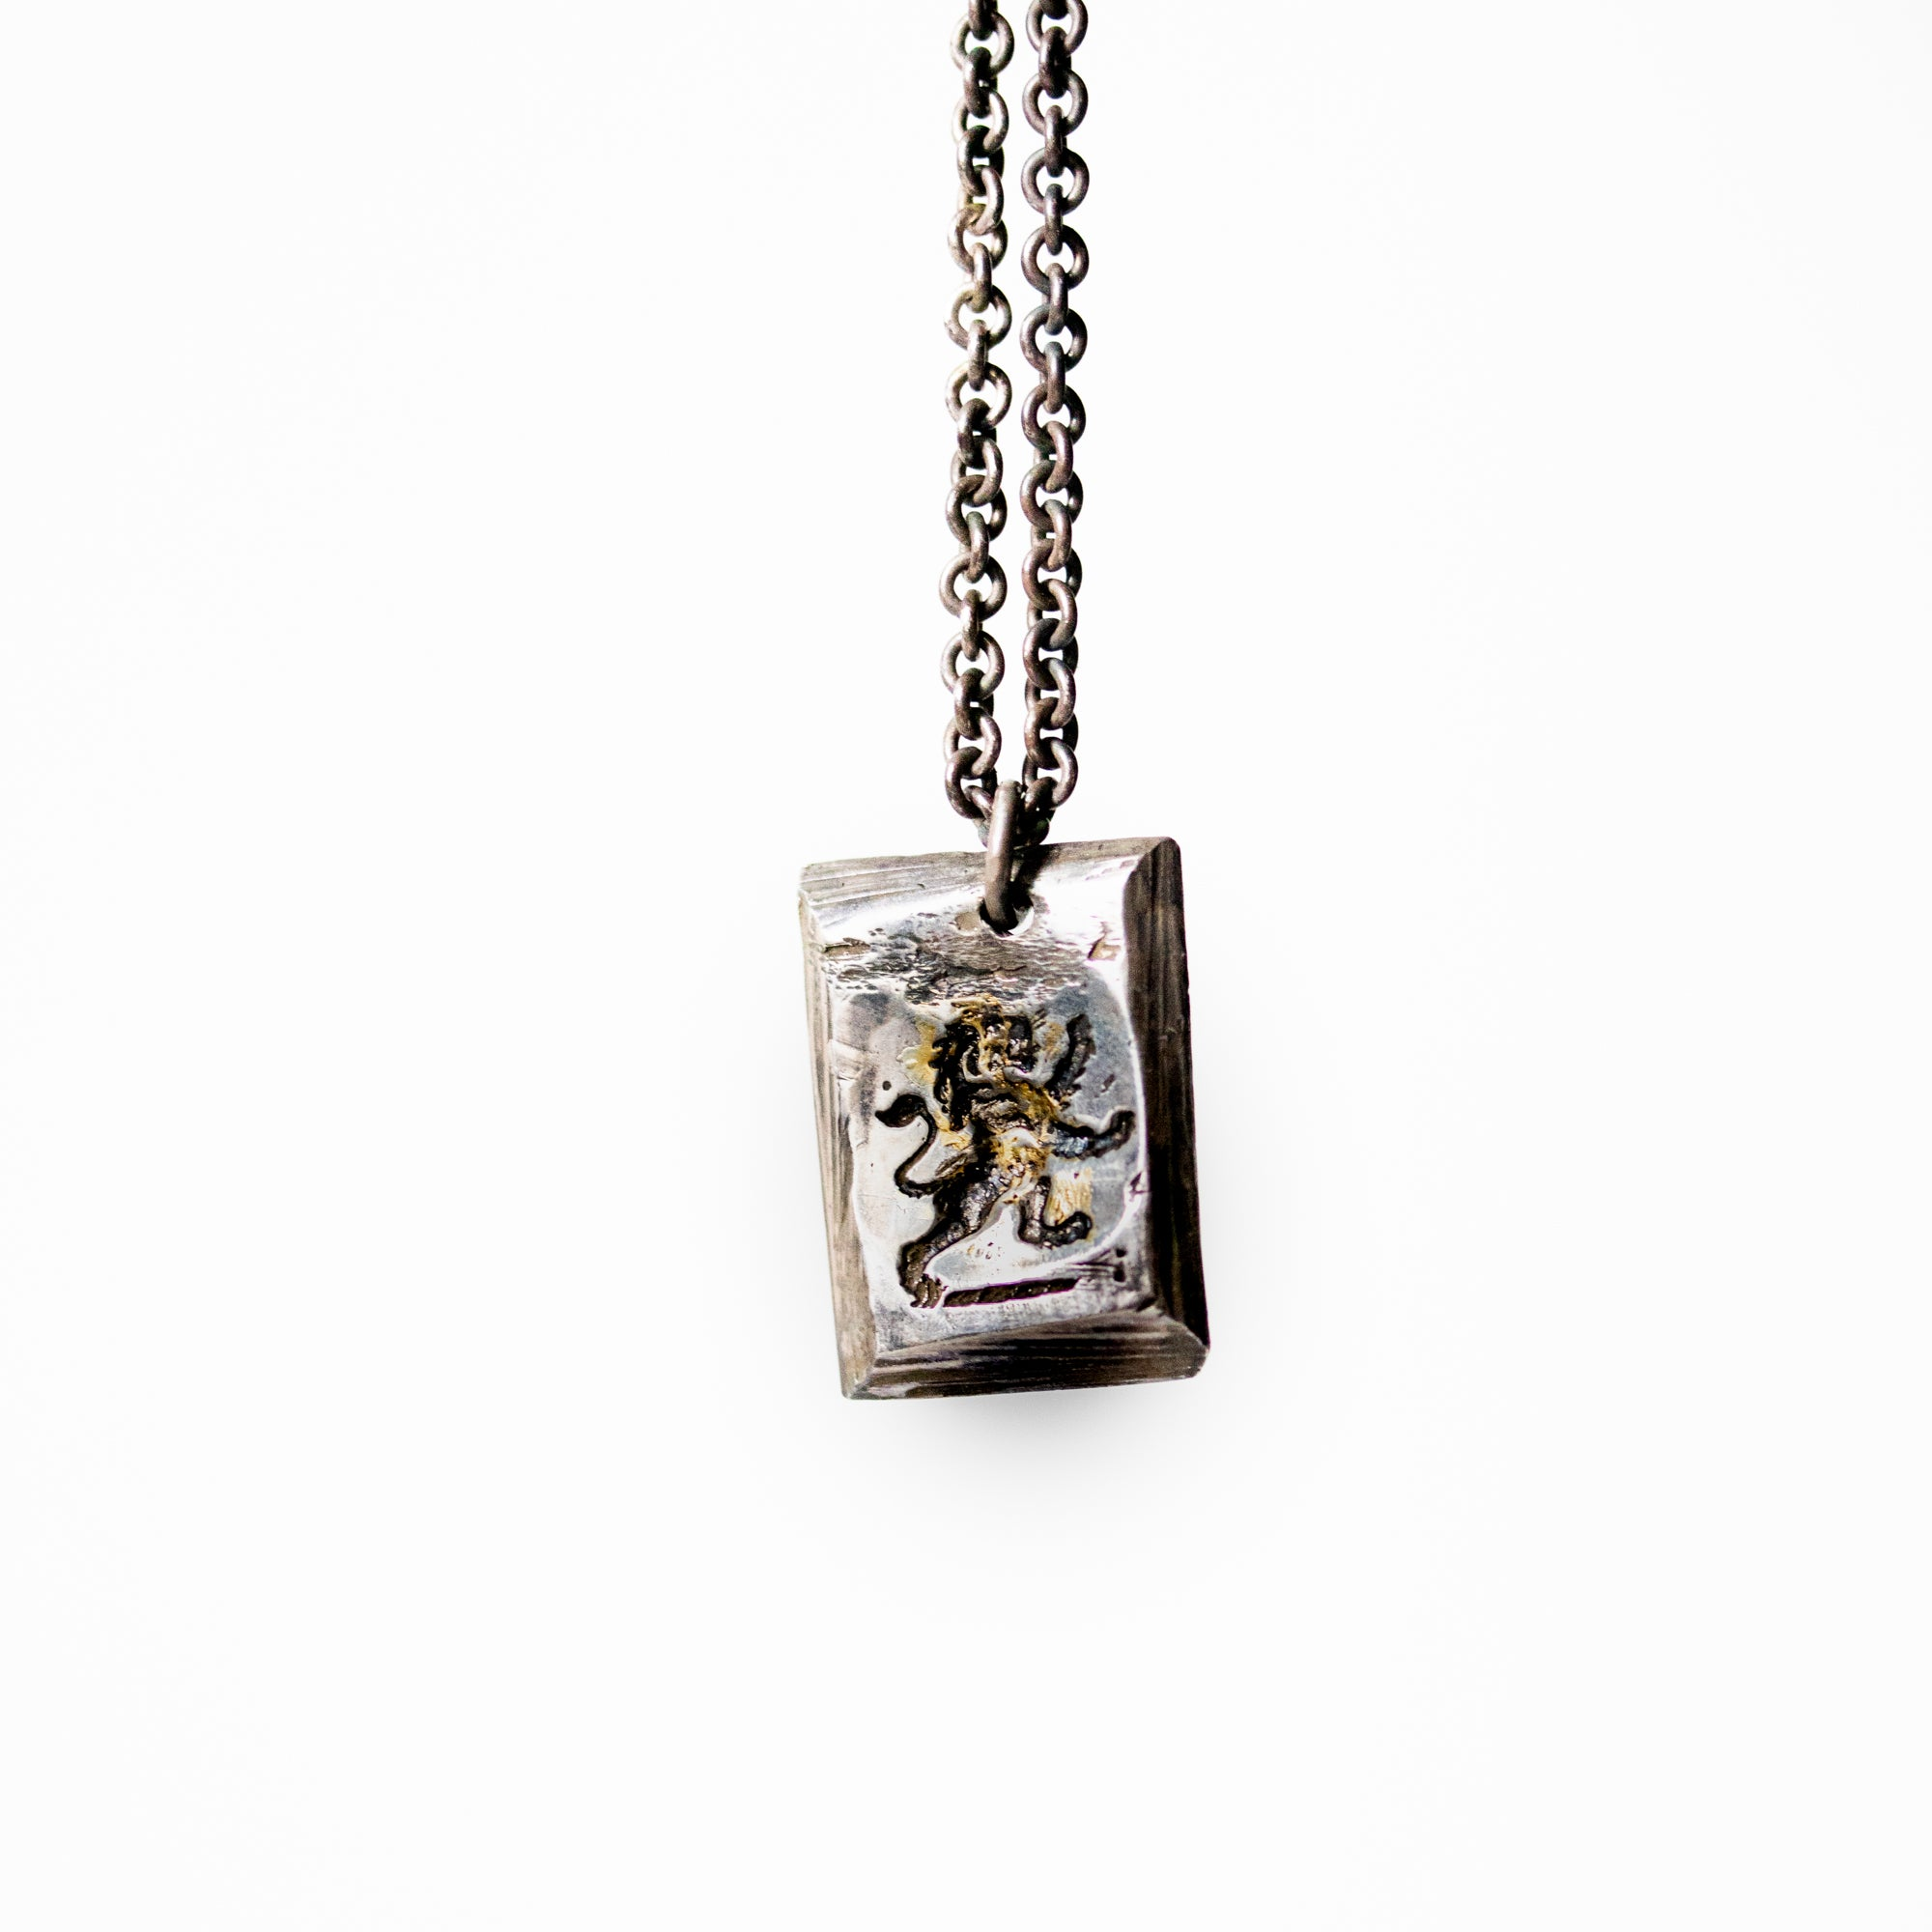 Illuminated Lion Tag Necklace - Machinations